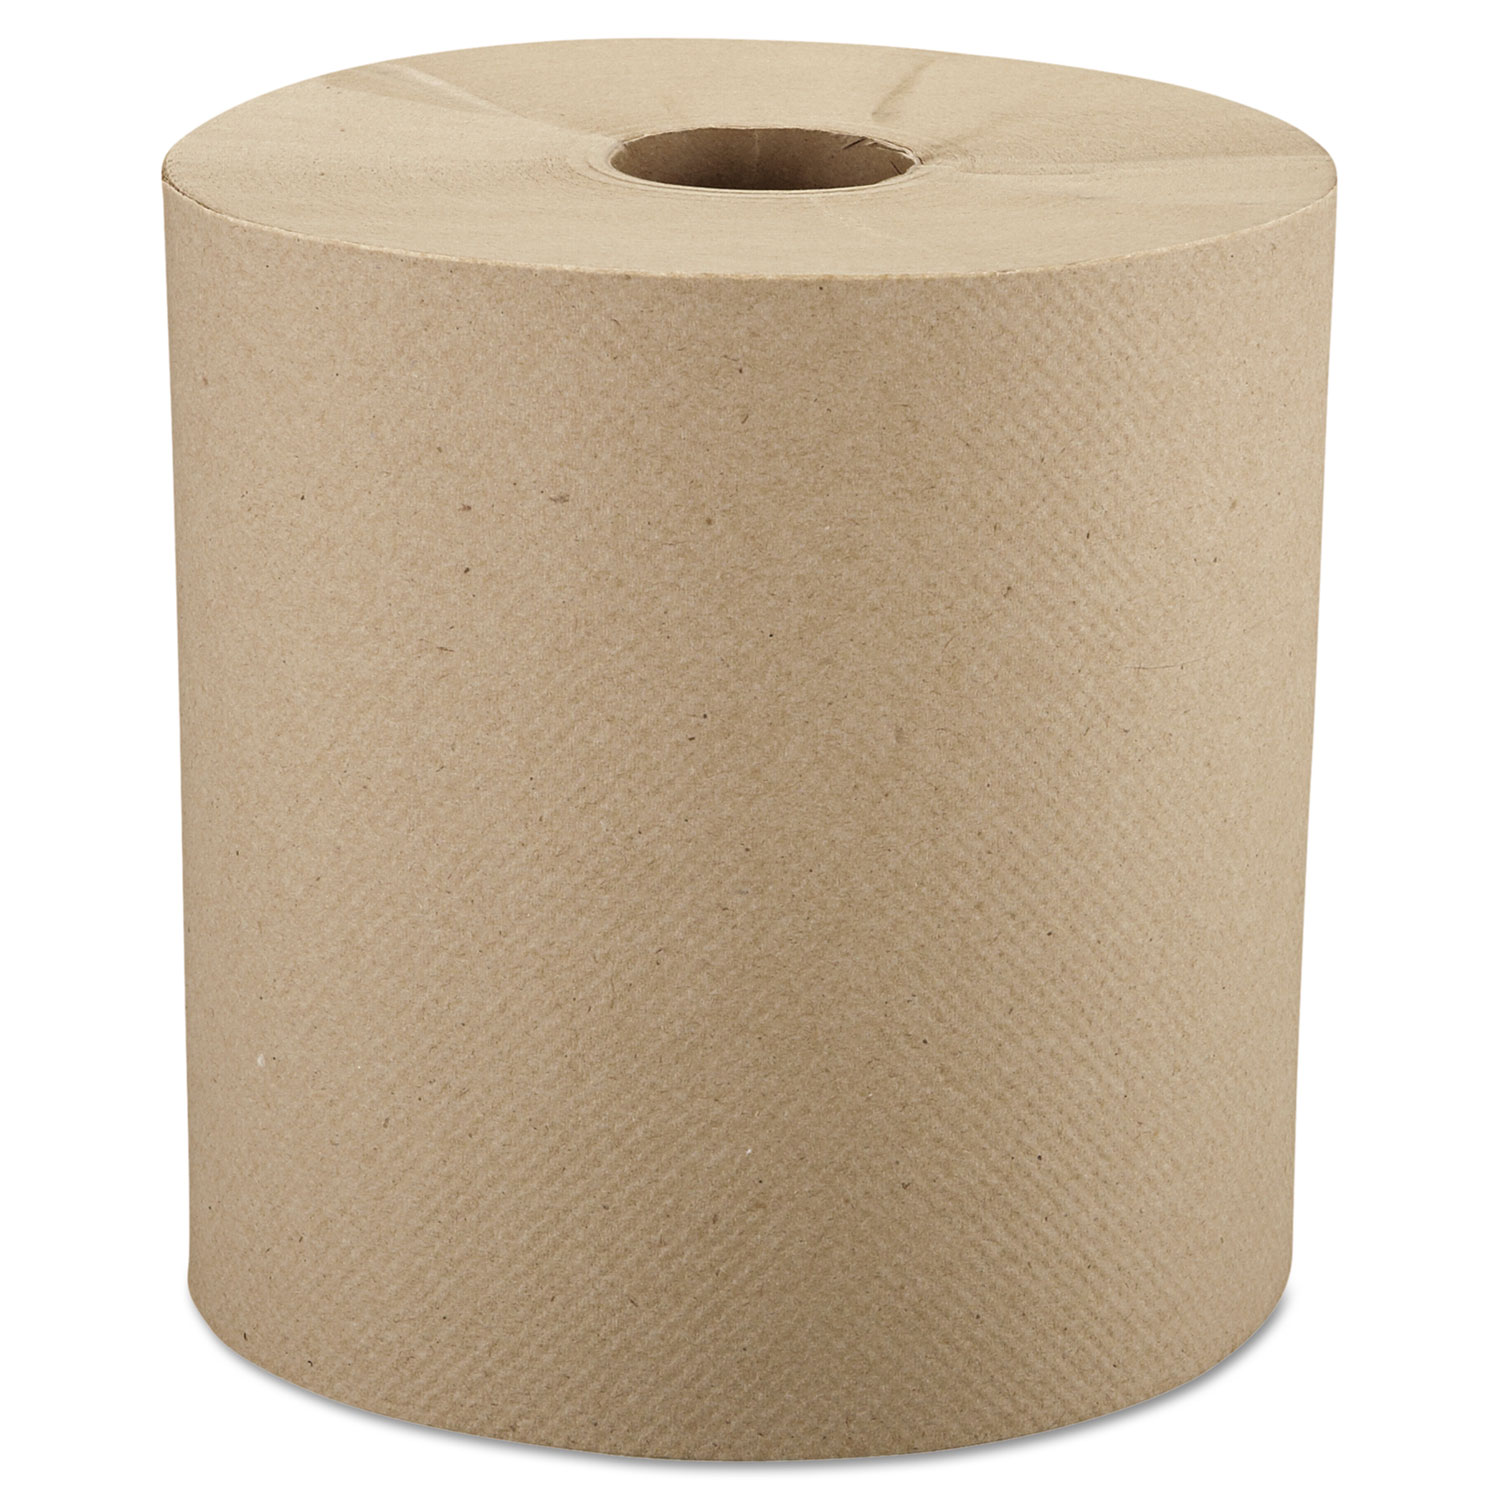 "Nonperforated Roll Towels, 8"" x 800ft, Brown, 6 Rolls/Carton"